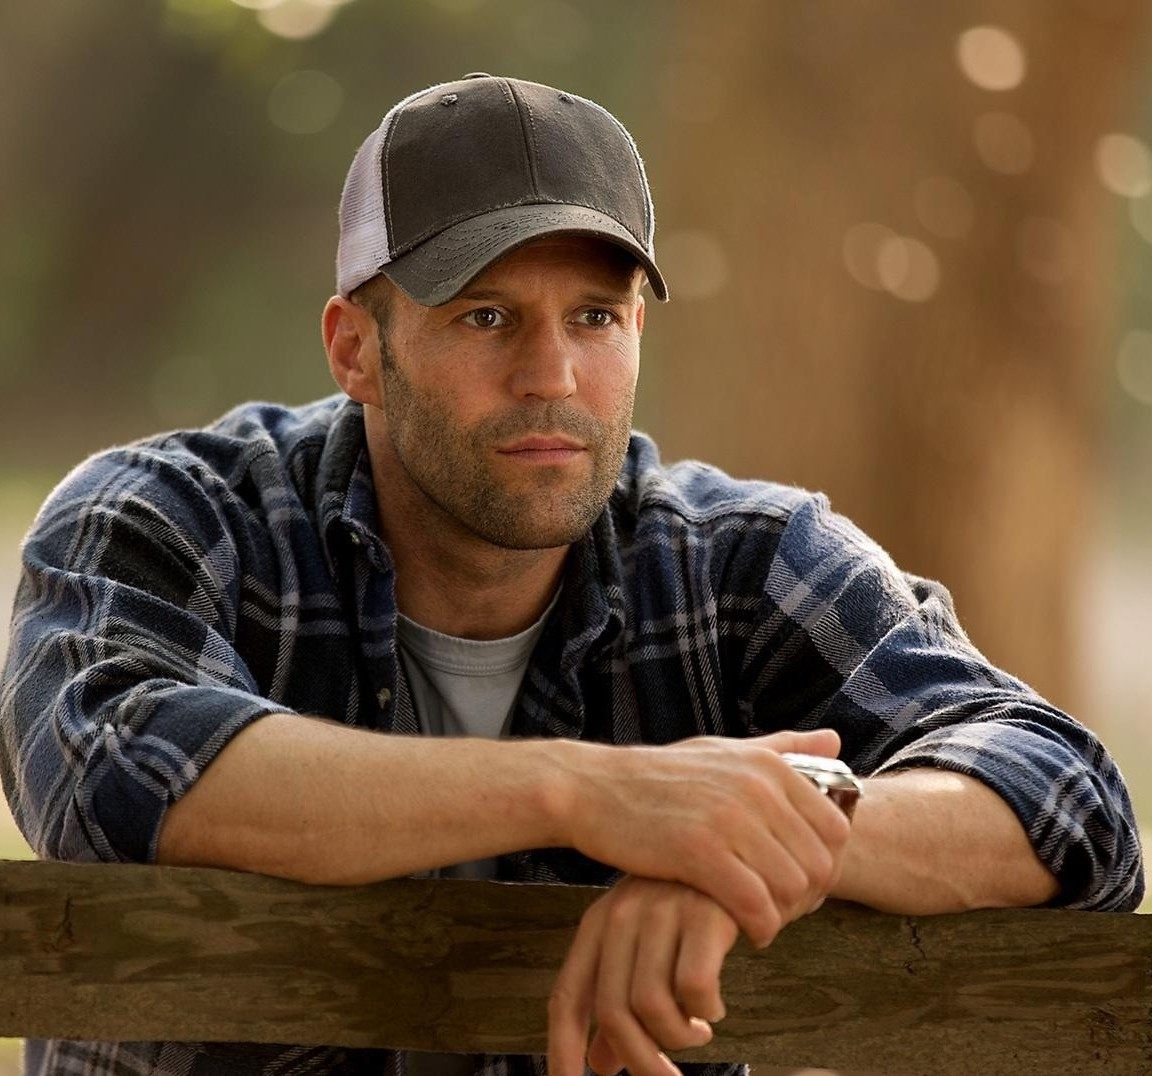 11 2 1 25 Facts That Will Make You Love Jason Statham Even More Than You Already Do